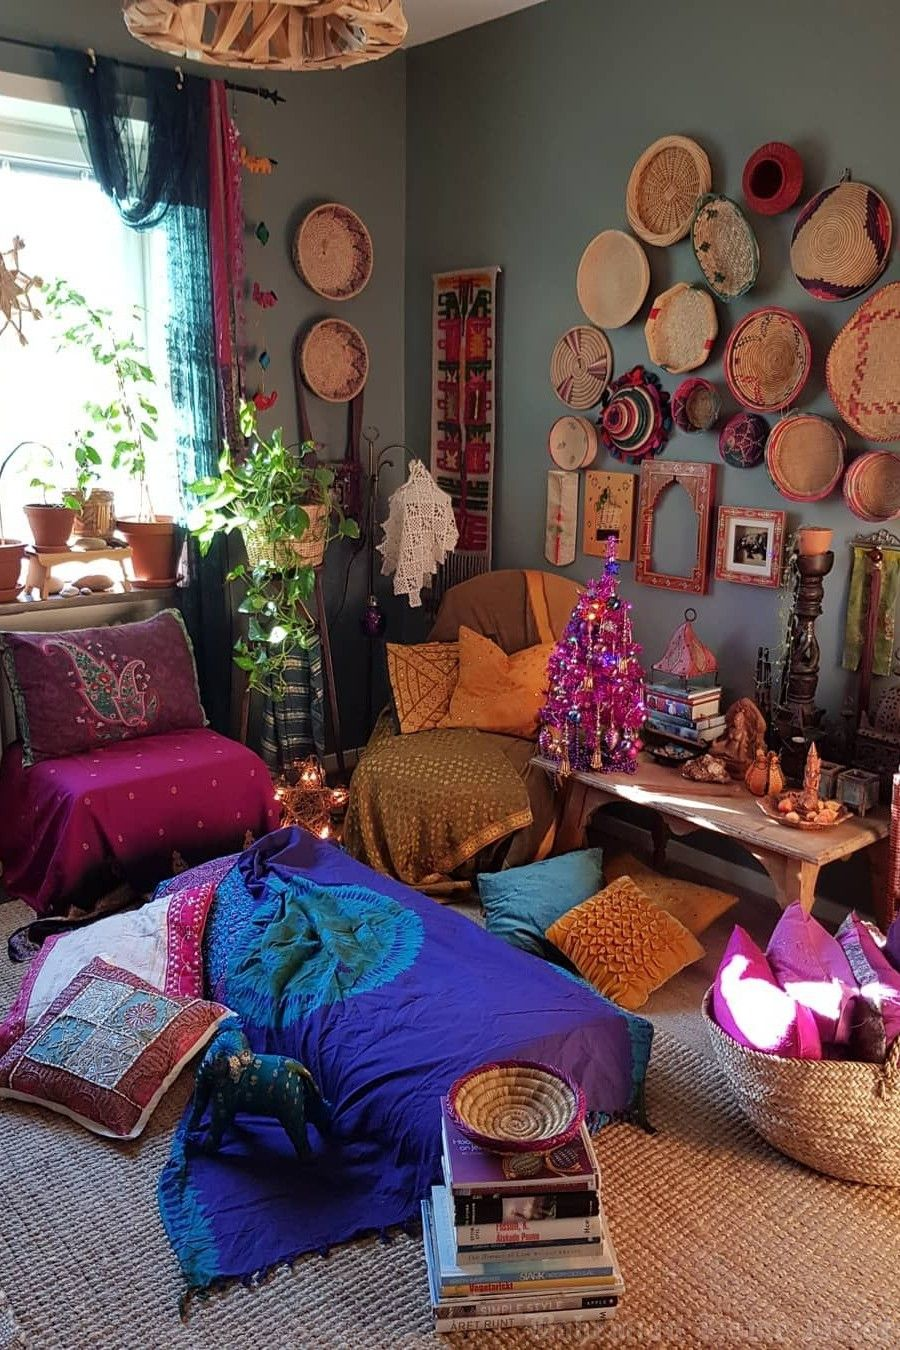 OMG! The Best Bohemian Home Decor Ever!